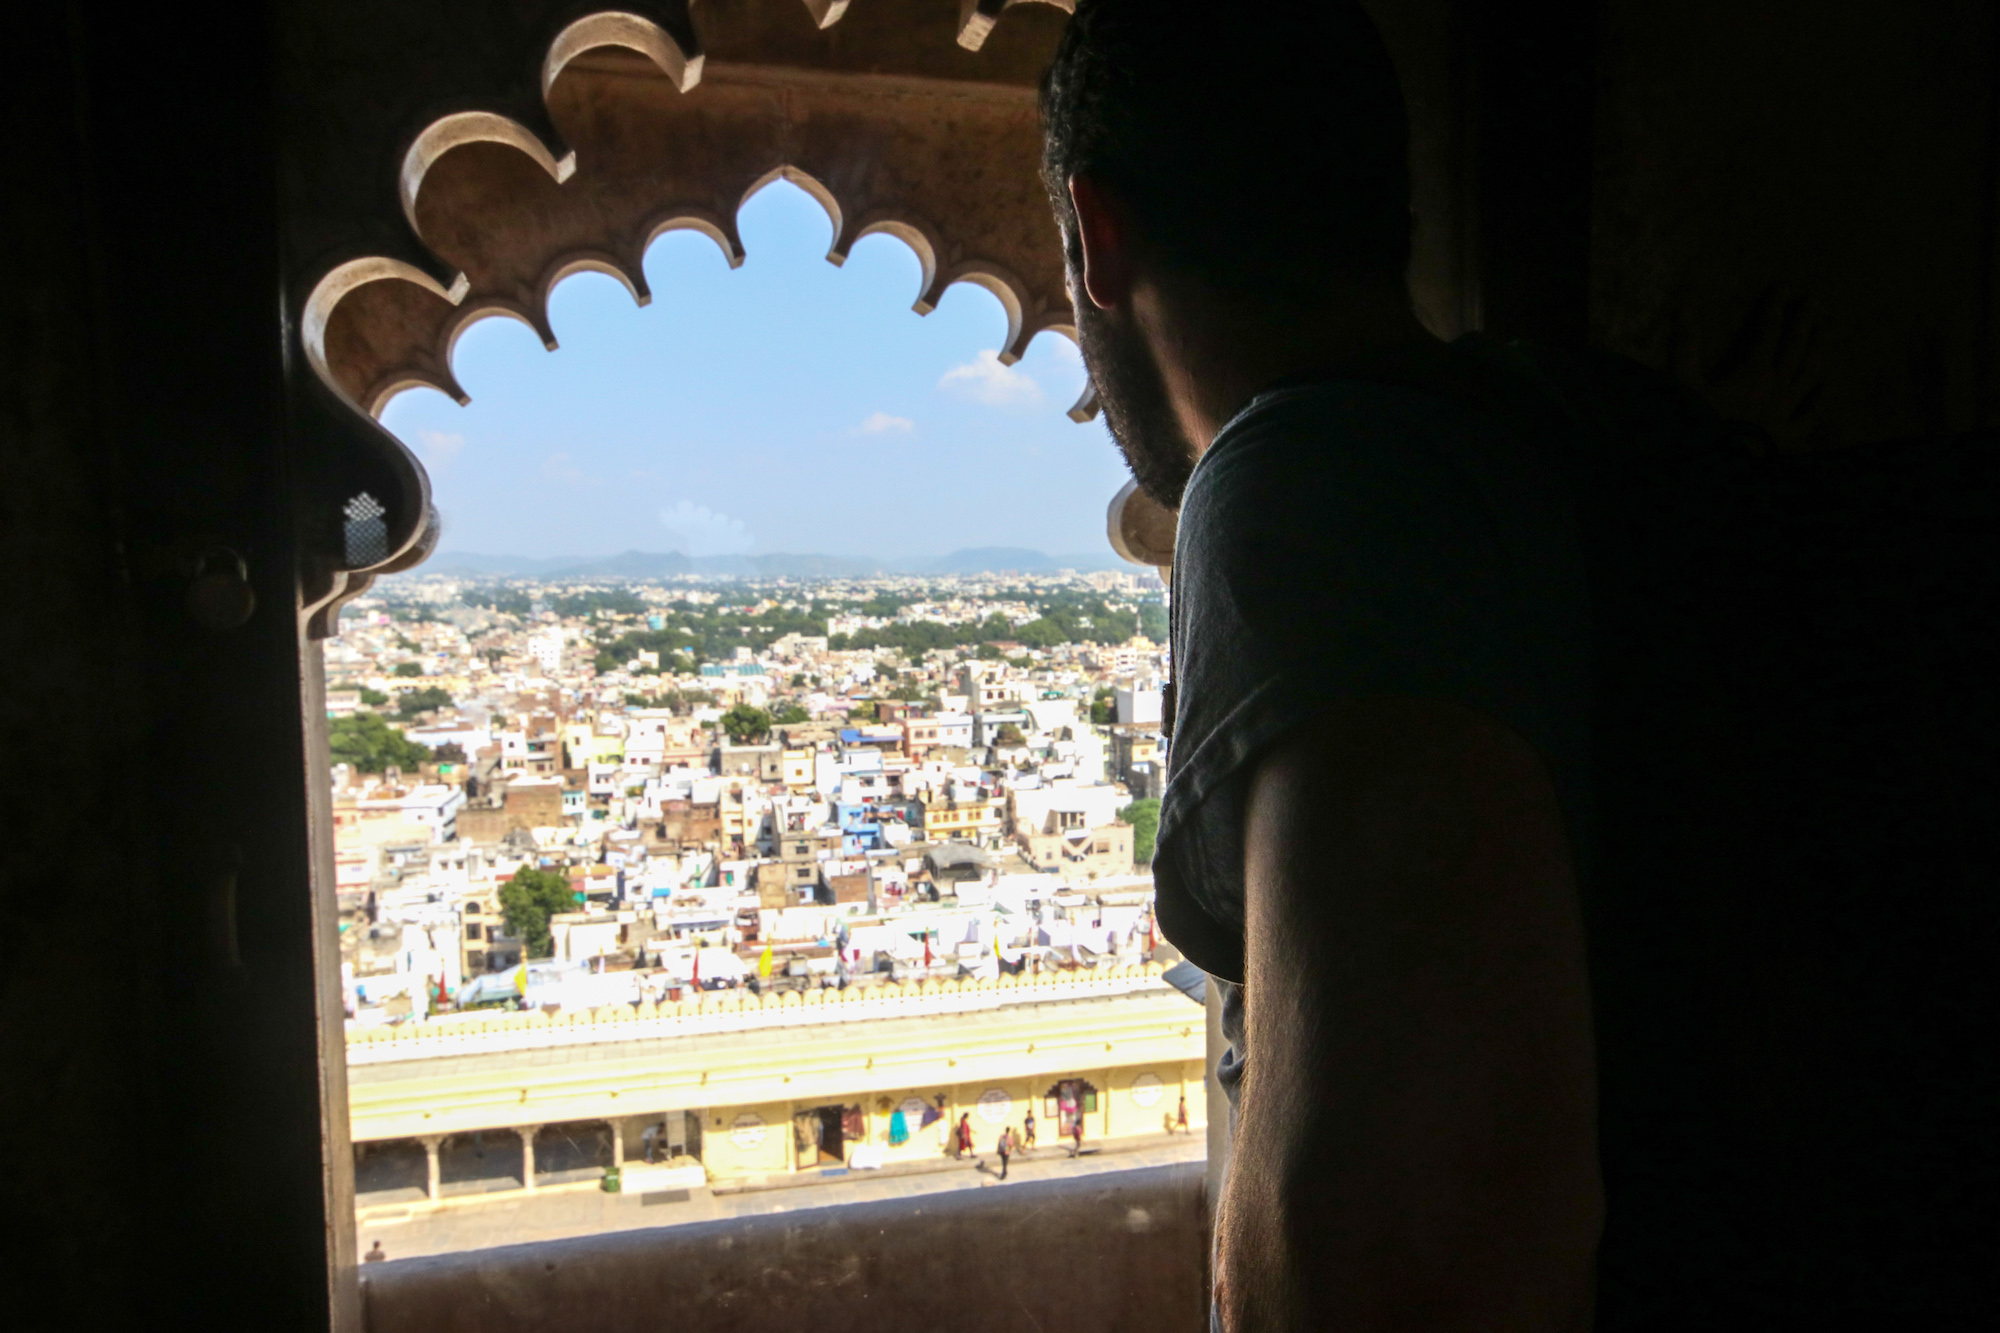 Jorge checking out the city from City Palace